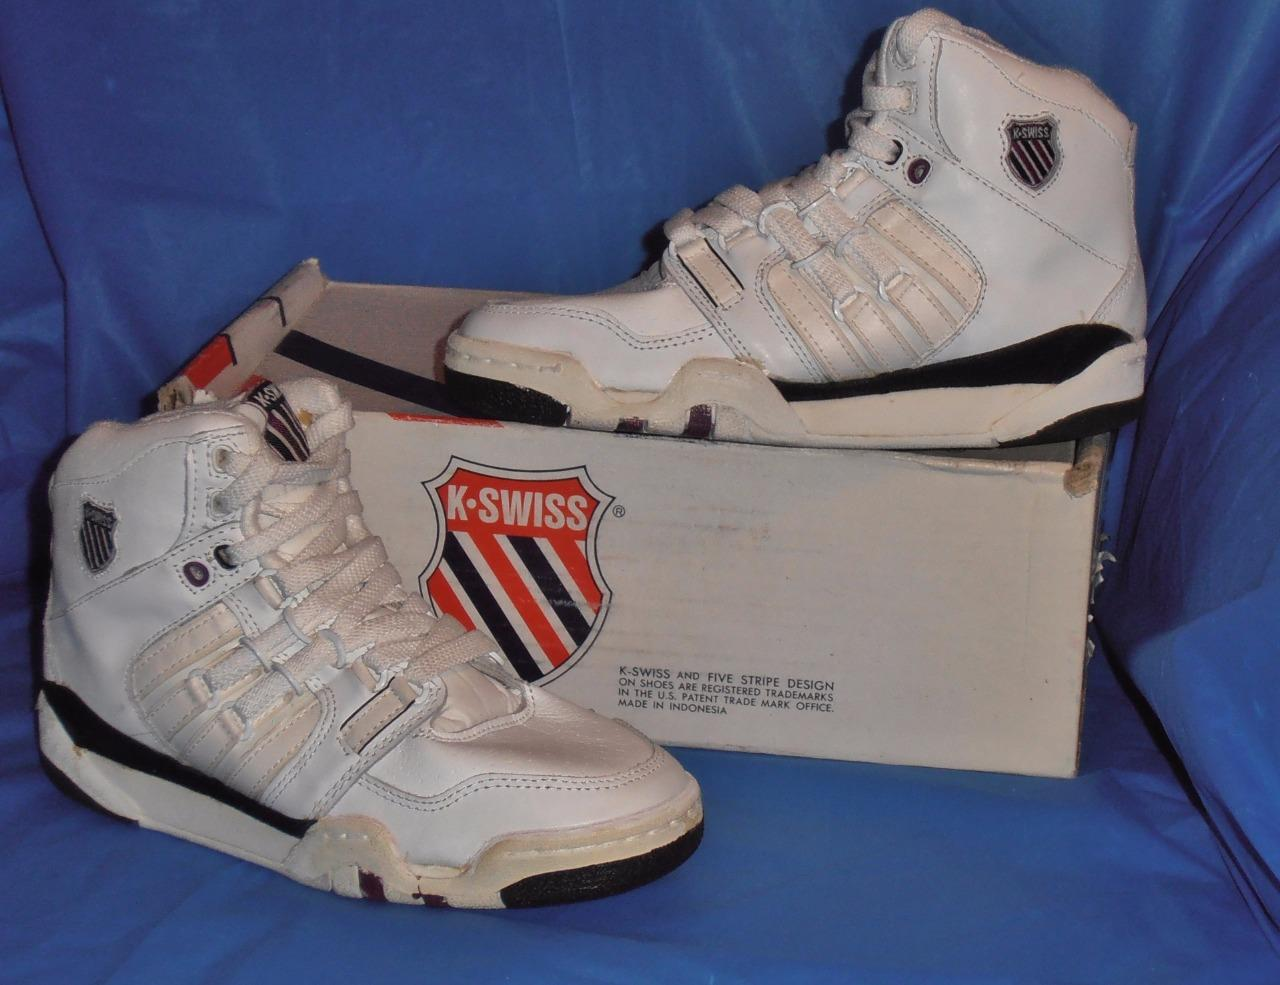 k swiss shoes indonesian people religions